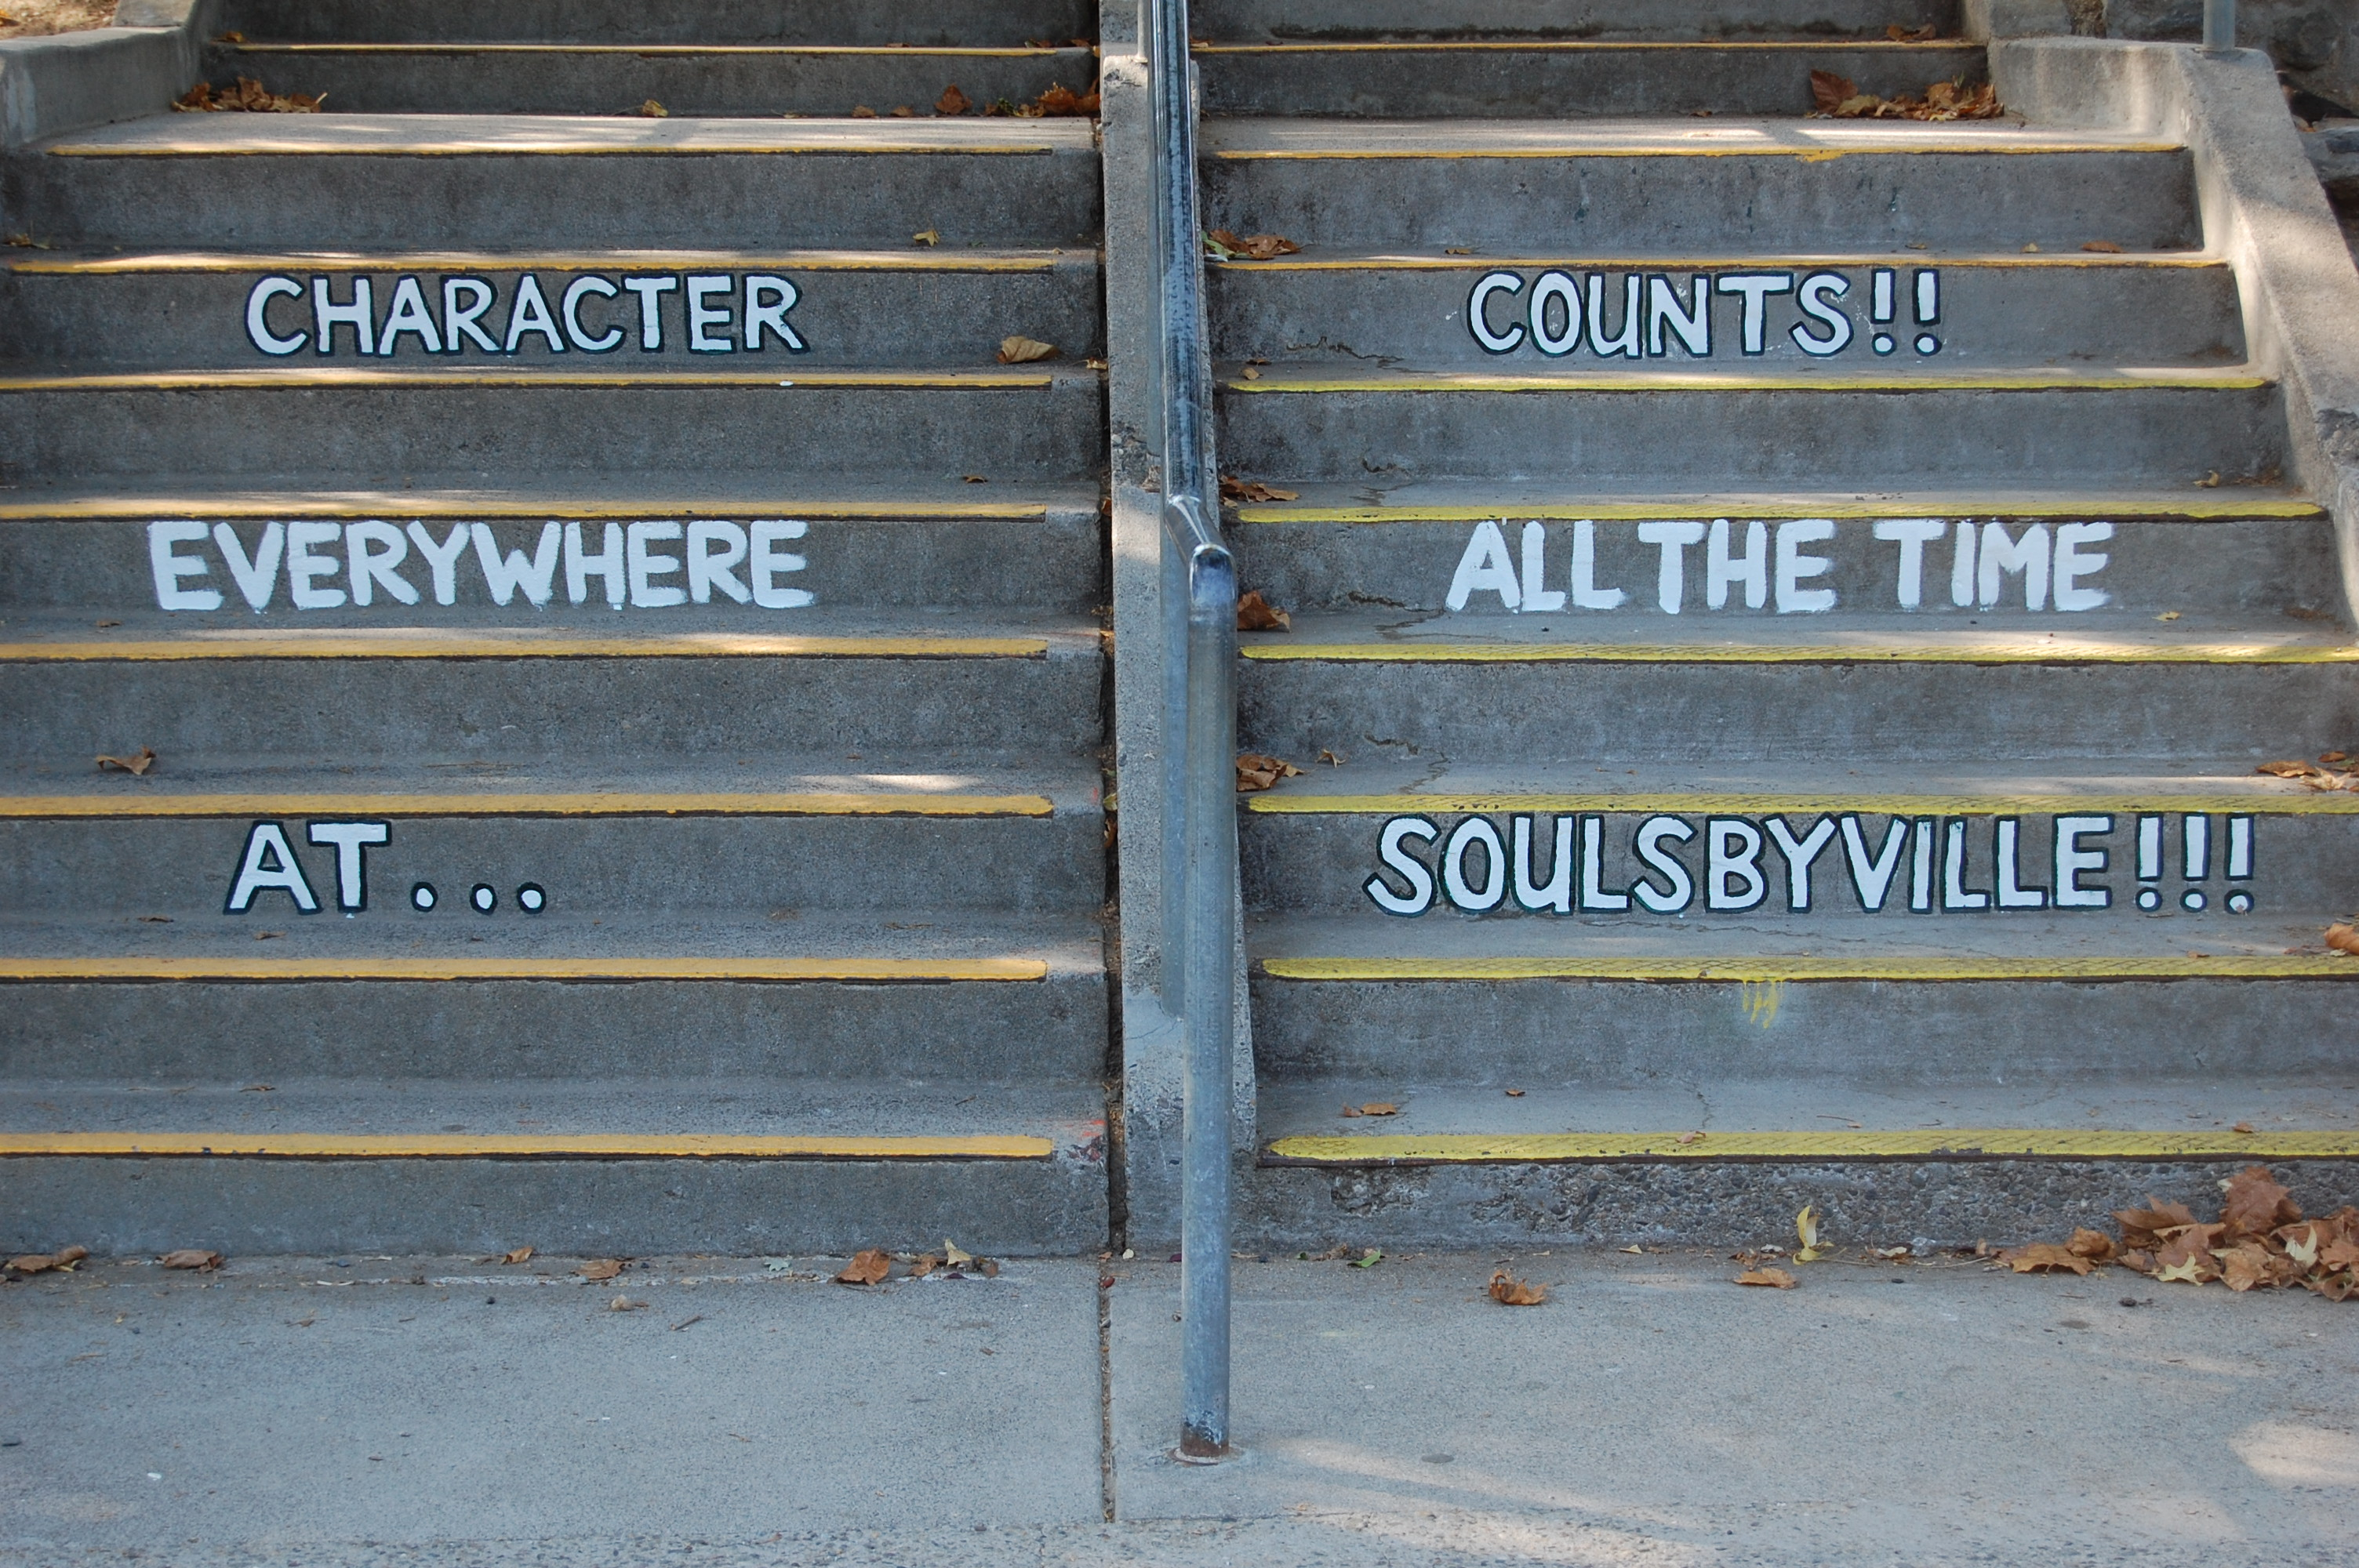 Character counts everywhere all the time at Soulsbyville